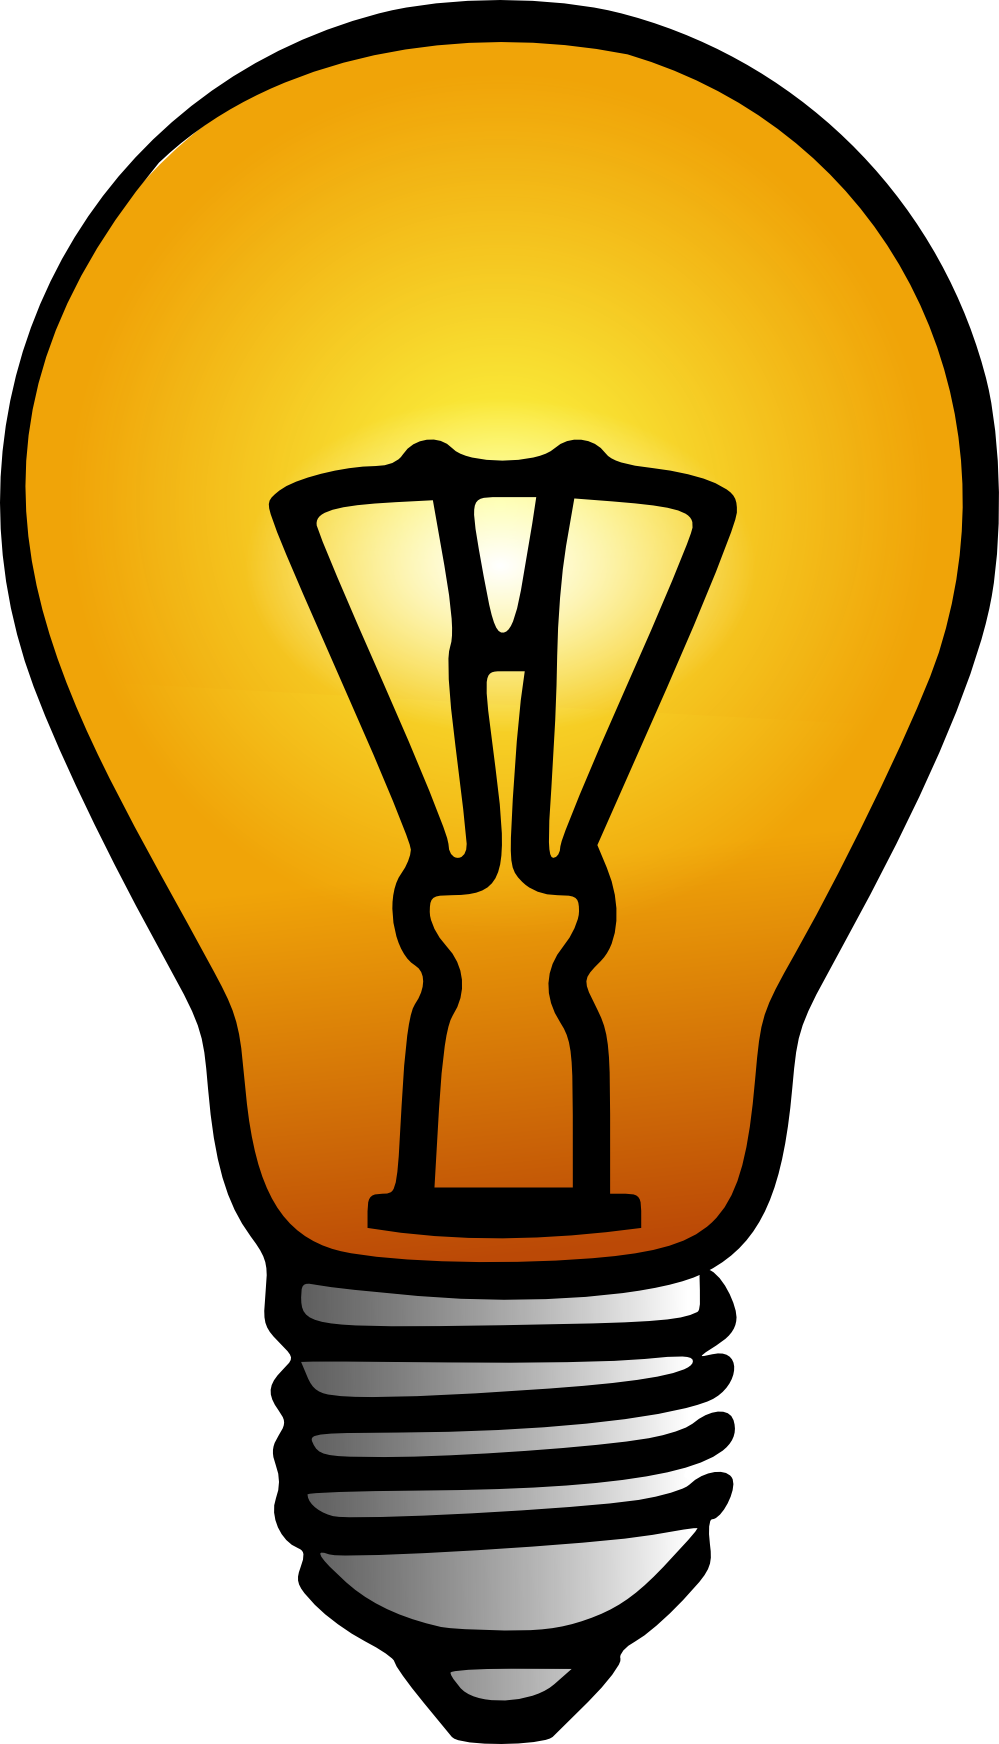 free clipart images light bulb - photo #35